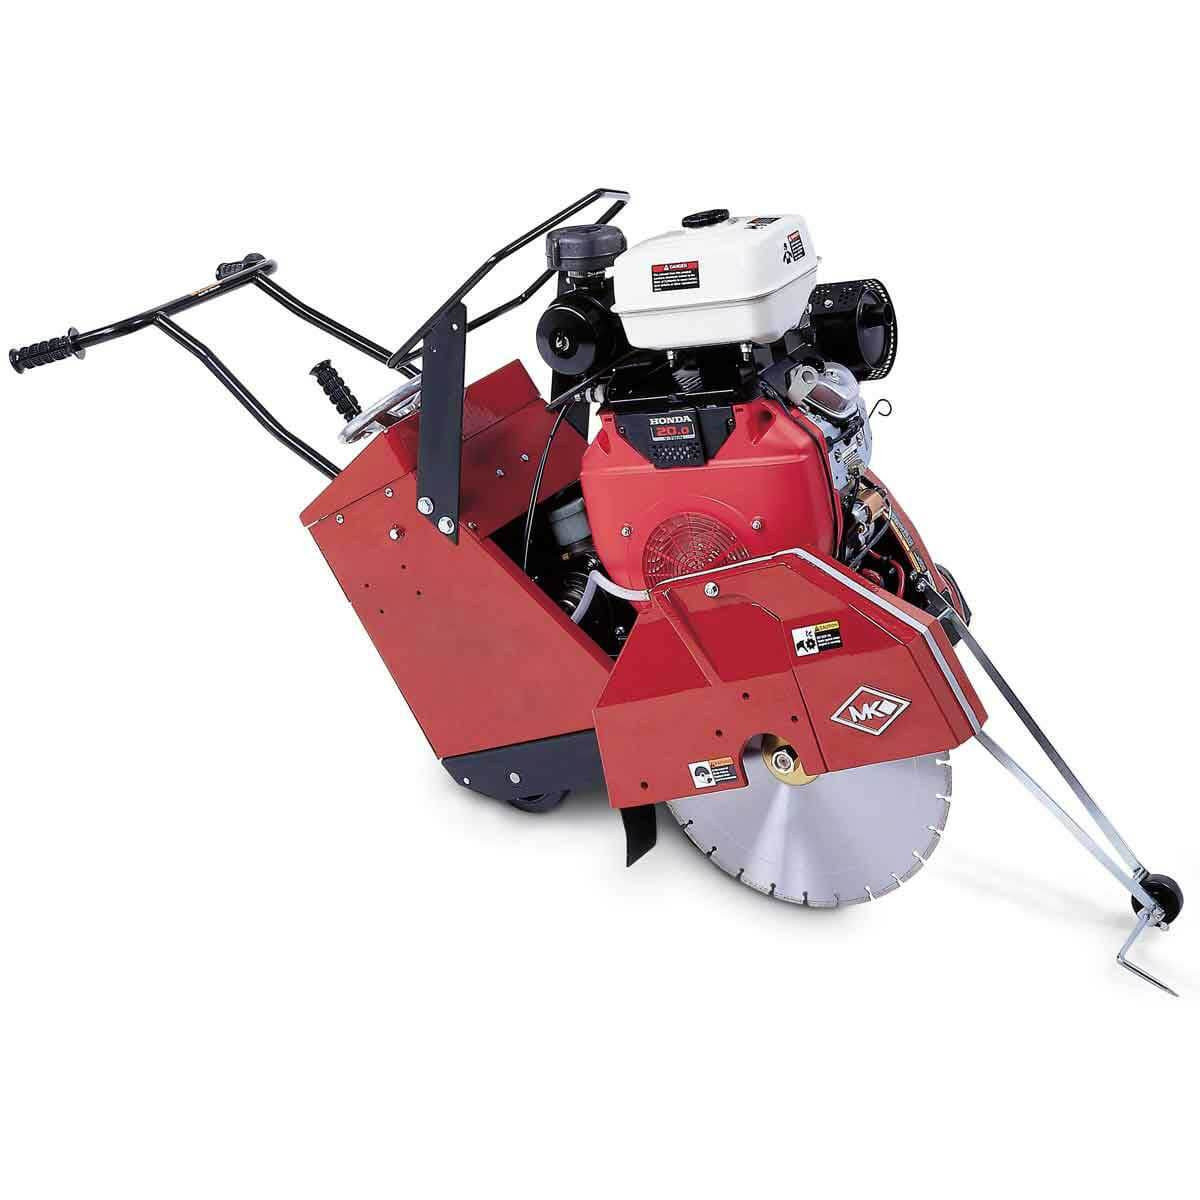 Mk 2020 20 Hp Honda Self Propelled Concrete Saw